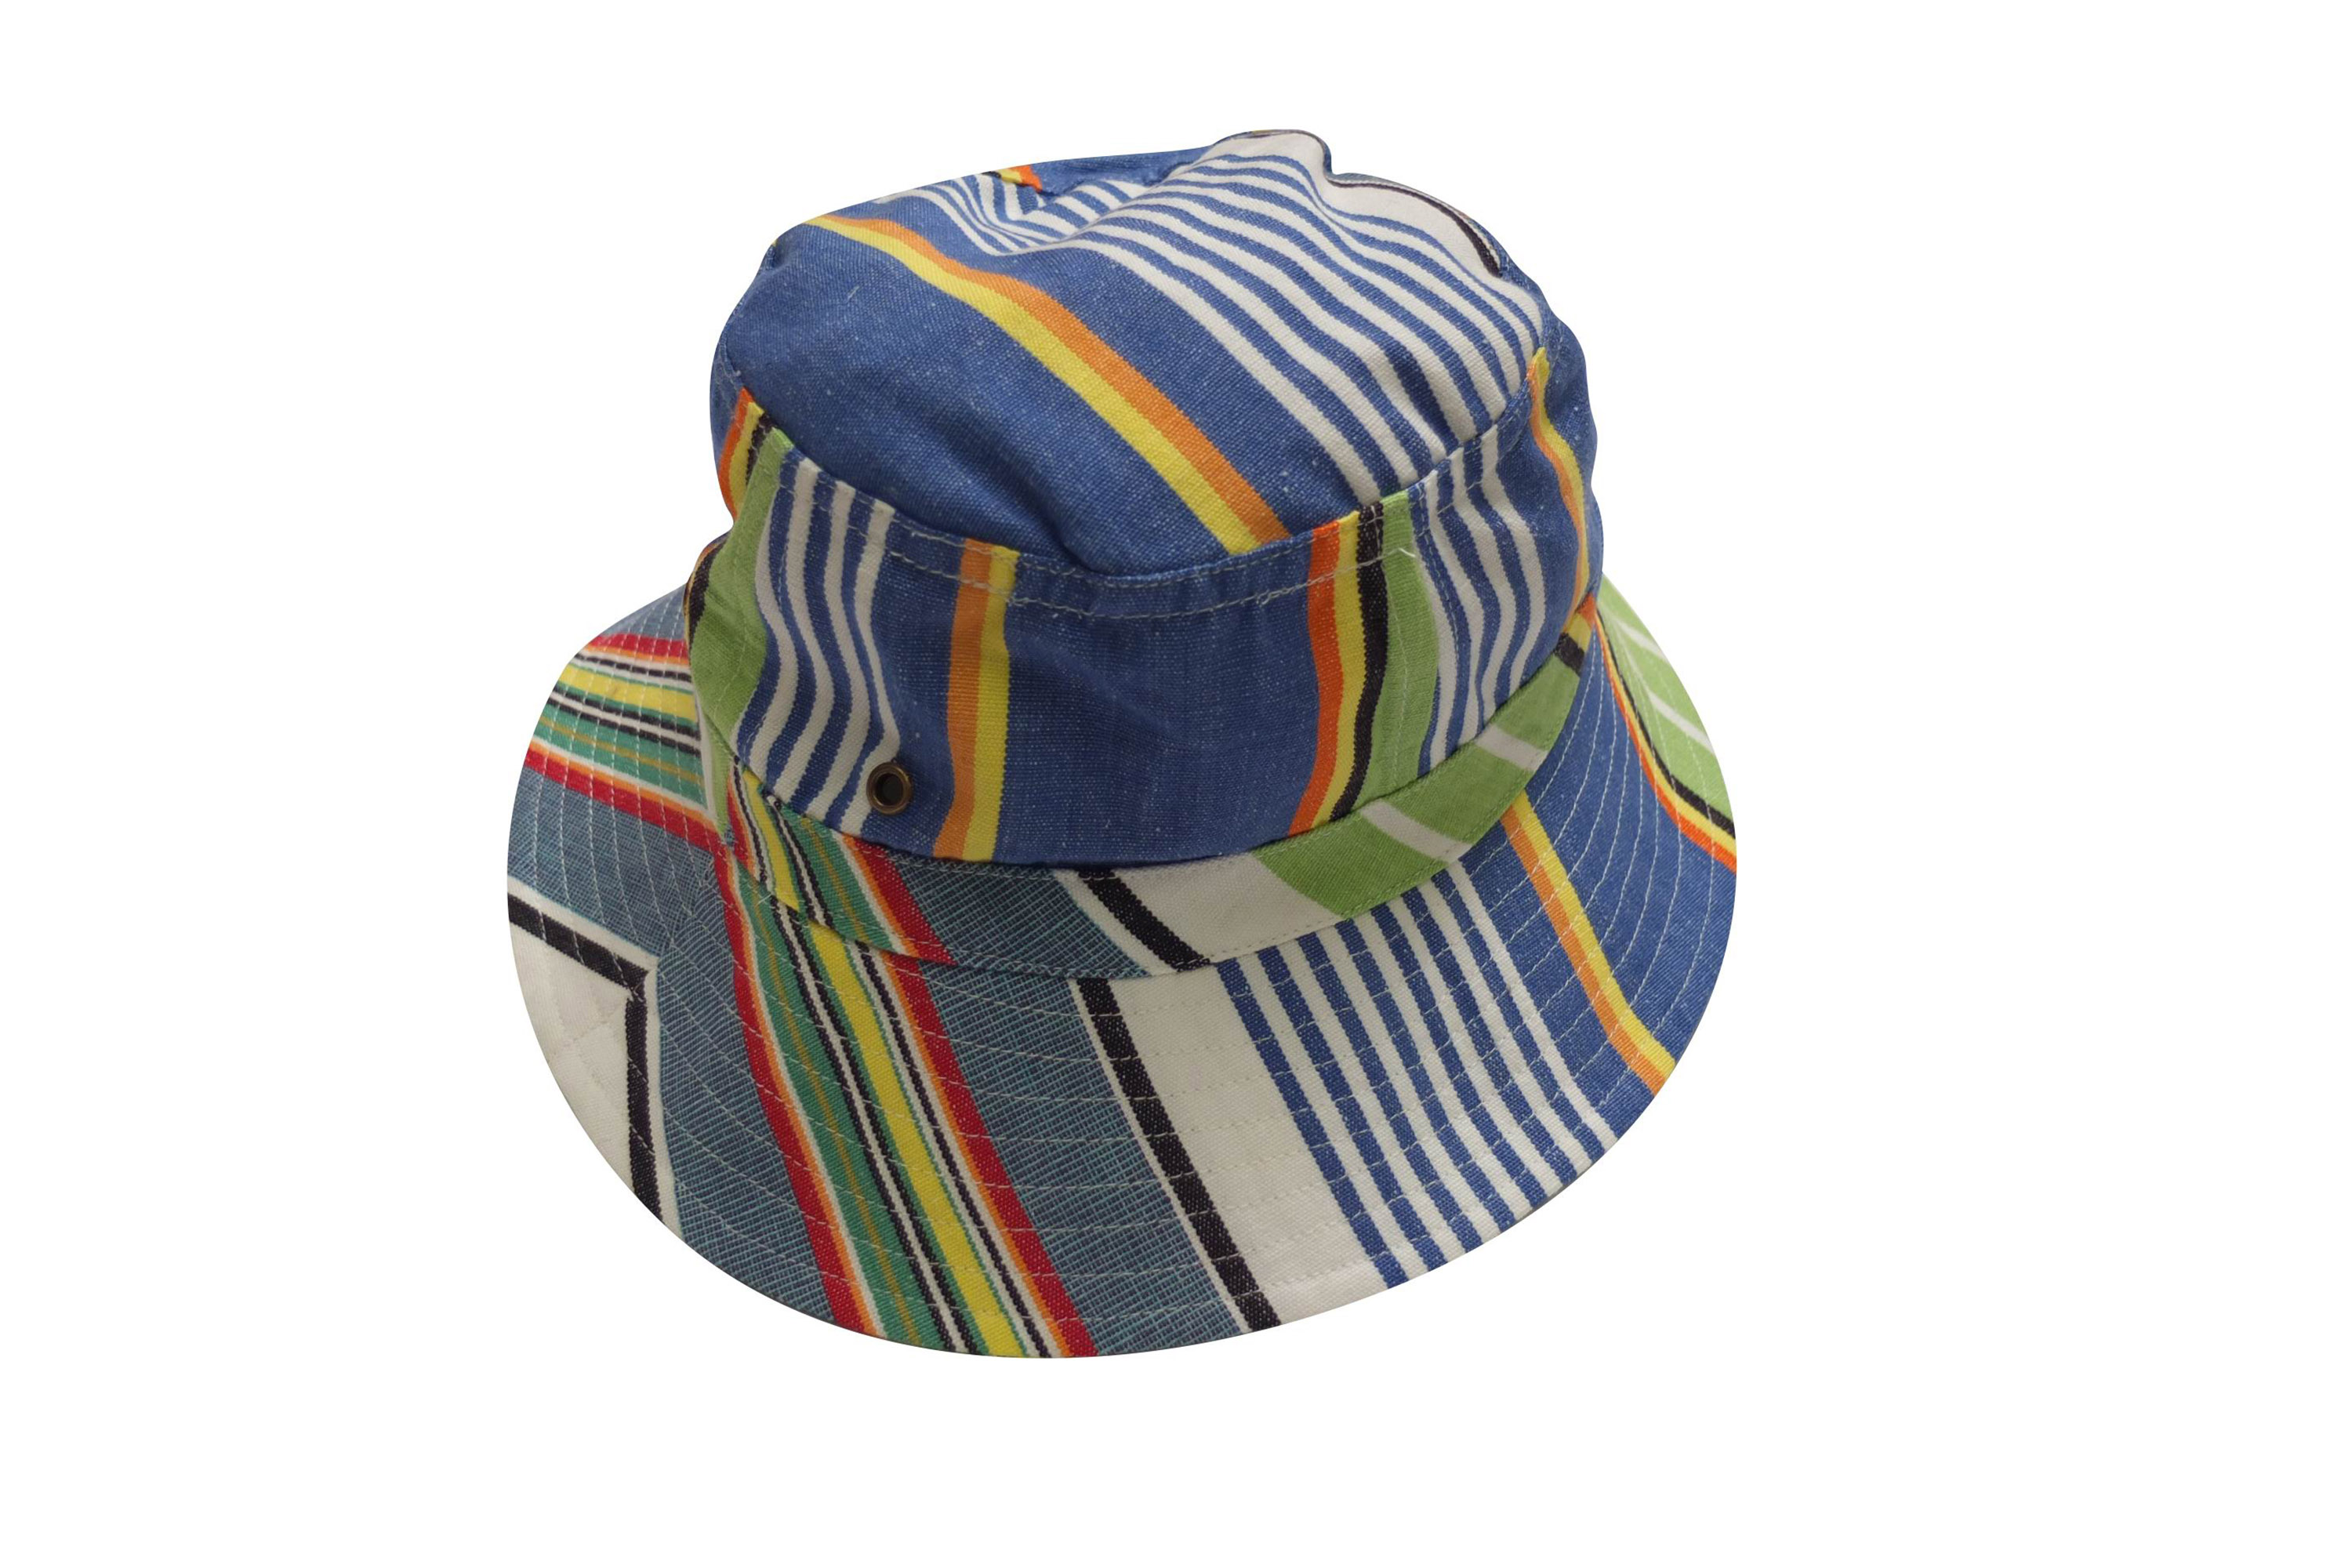 Denim Blue Striped Sun Hats | Sun Protection Hat | Tumbling Stripe